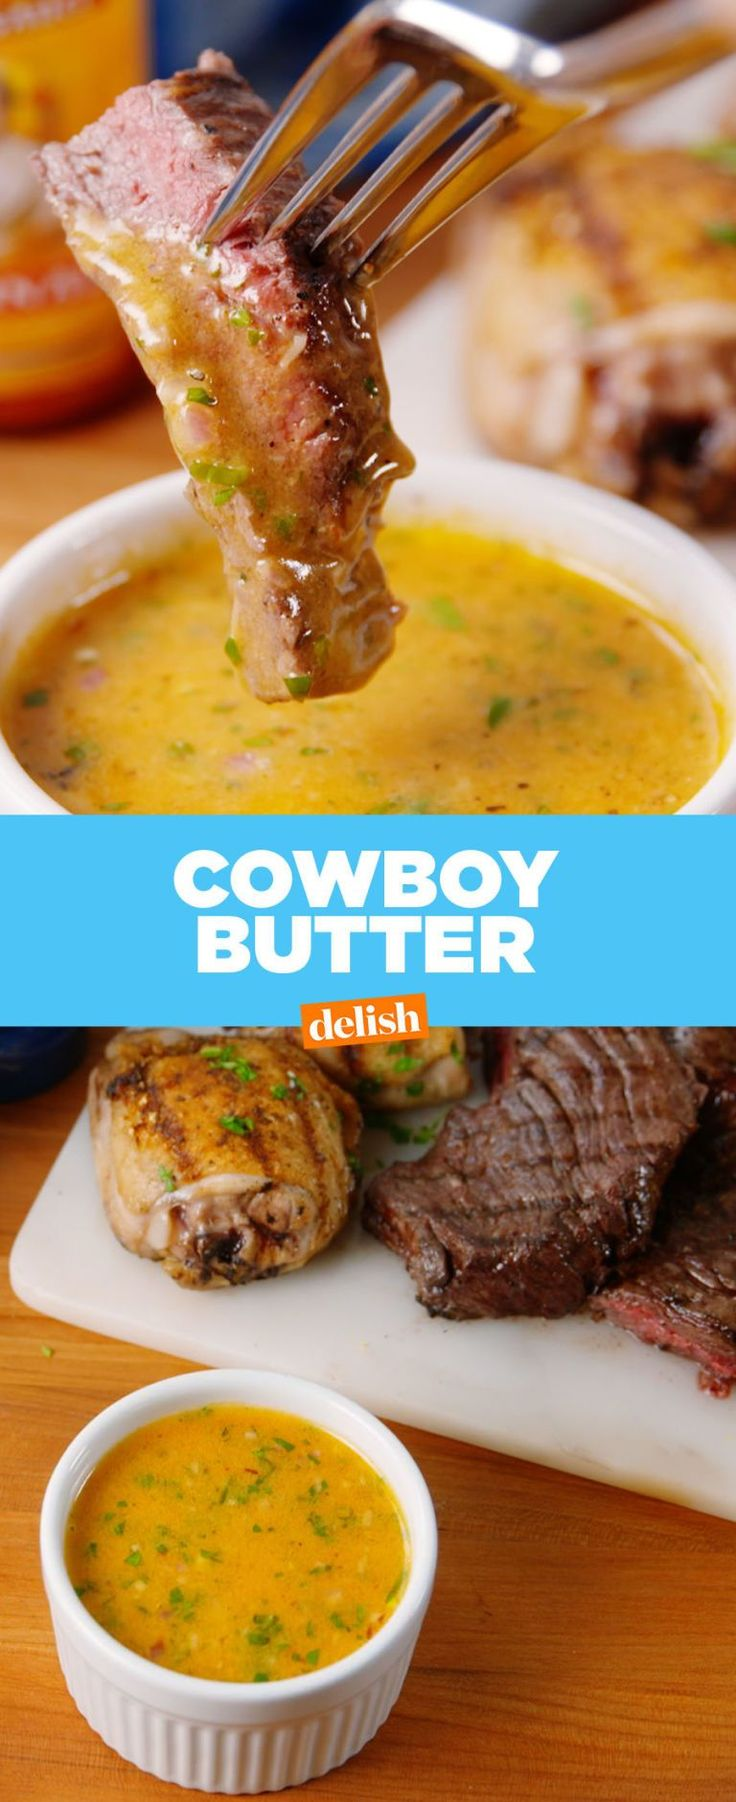 Cowboy Butter http://www.delish.com/cooking/recipe-ideas/recipes/a53330/cowboy-butter-recipe/